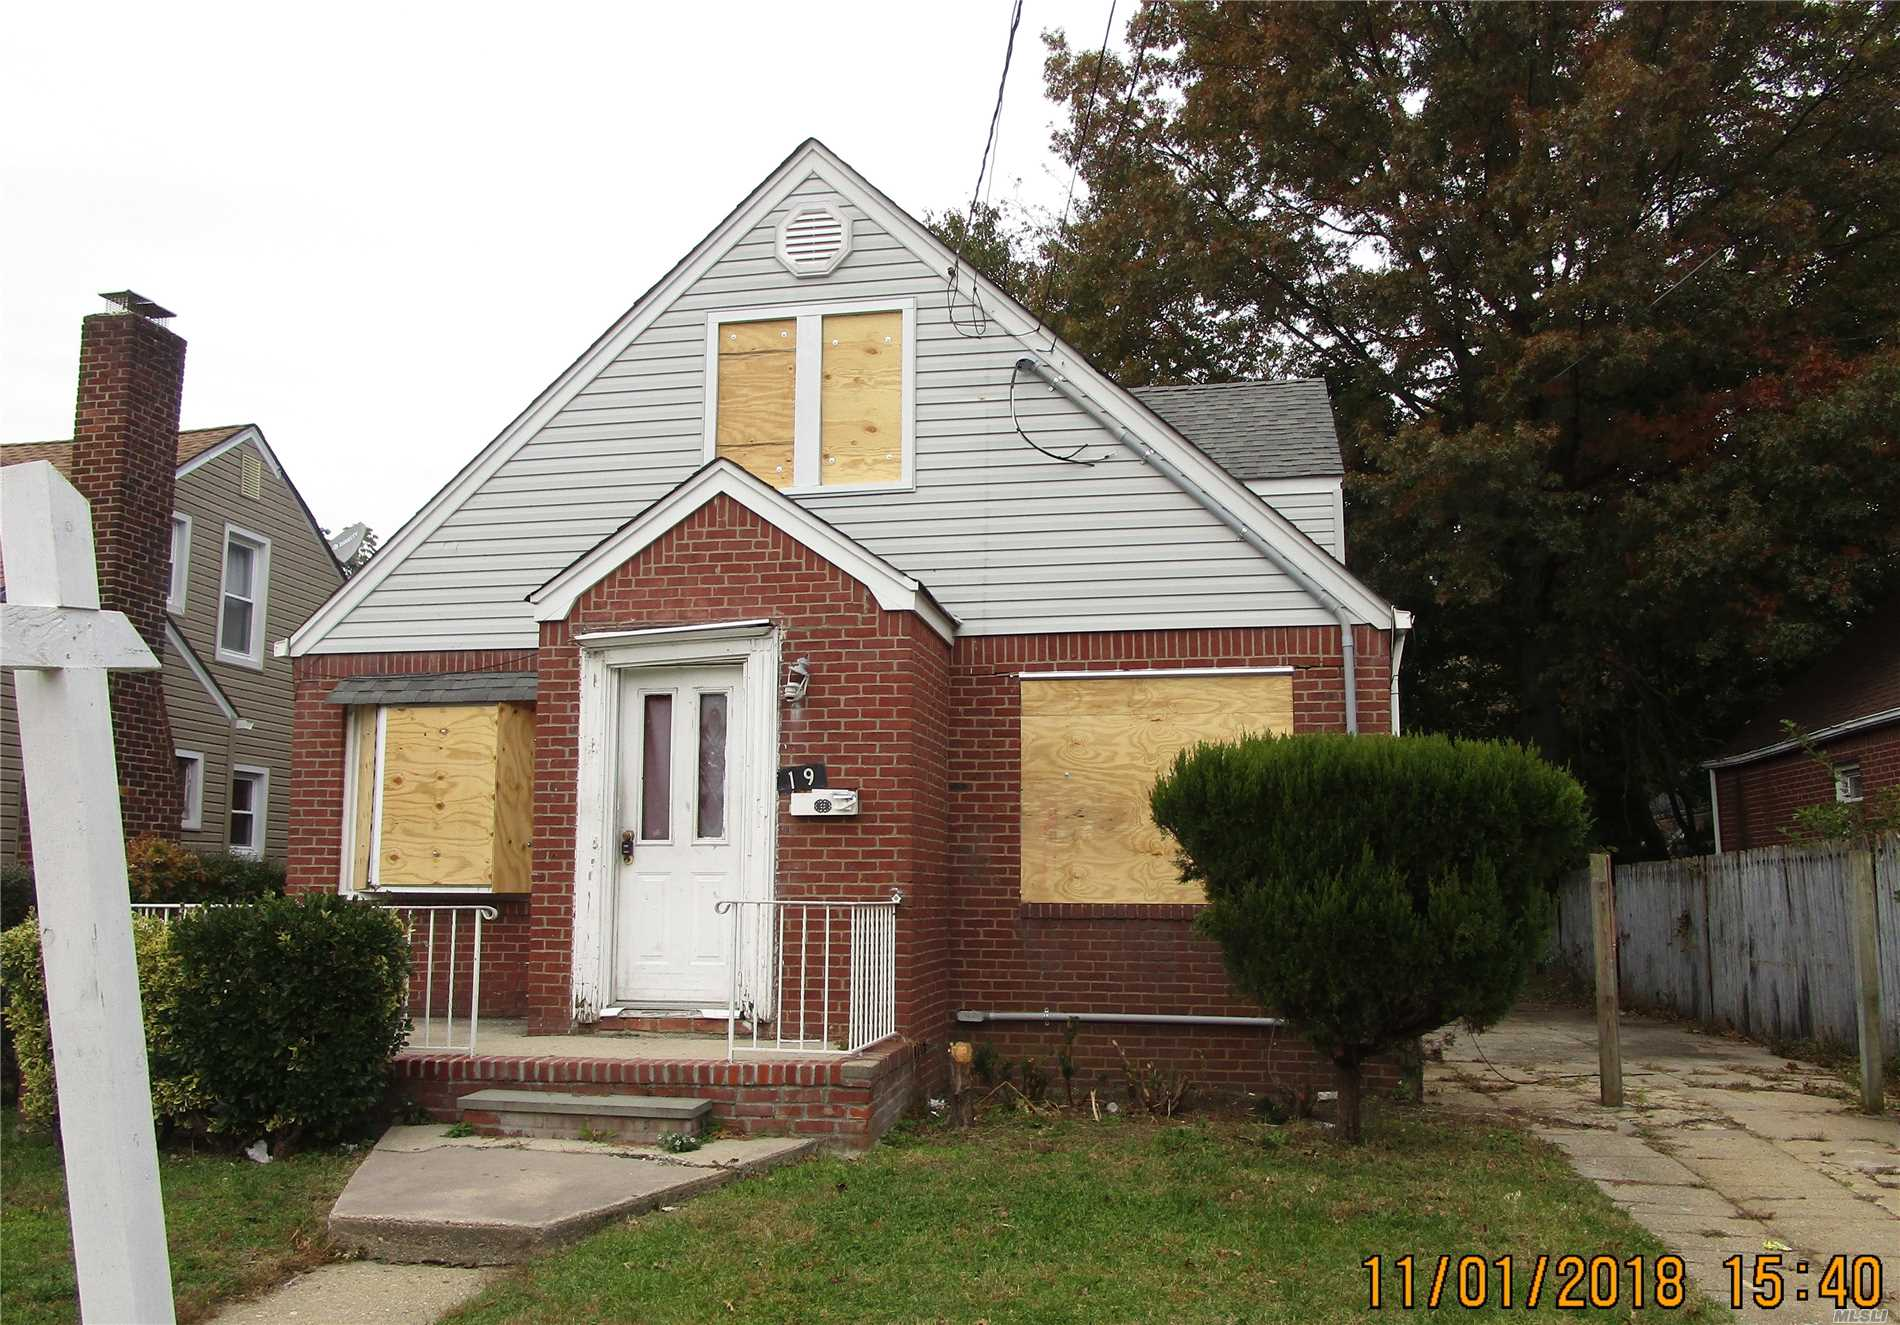 Roll Up Your Sleeves And Make This Your Dream Home. Yes Work Is Needed But Once Finished You Can Take Pride In Your New Home. Just Minutes To The Southern State Parkway, This Home Is Close To All Your Needs With Quick Access To Major Parkways And 20 Minutes To Jones Beach And 35 Minutes To Manhattan.